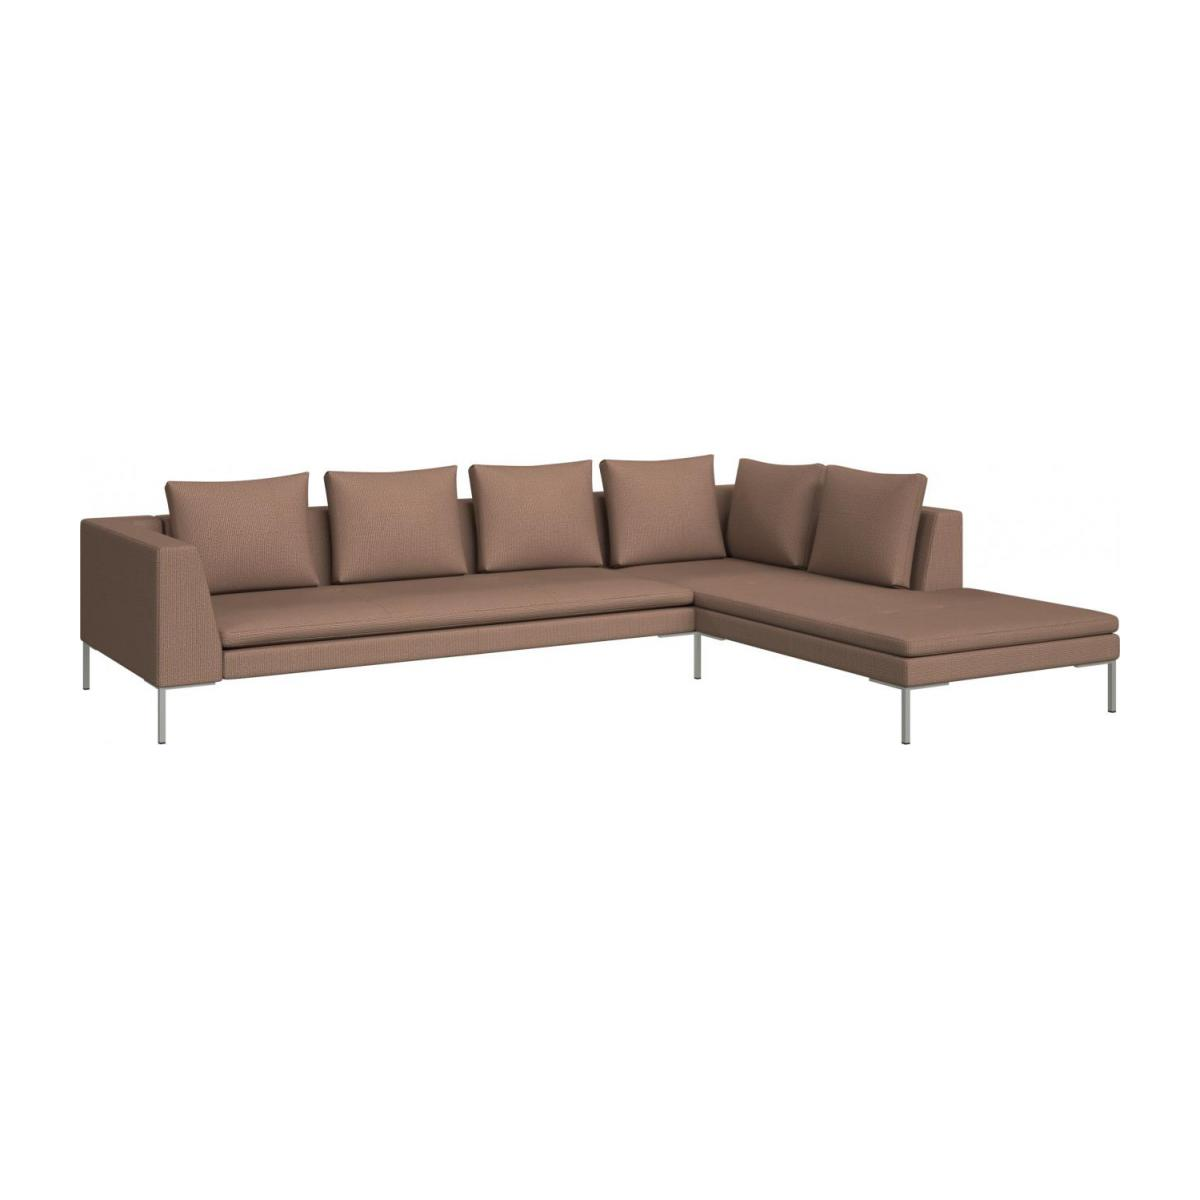 3 seater sofa with chaise longue on the right in Fasoli fabric, jatoba brown  n°1